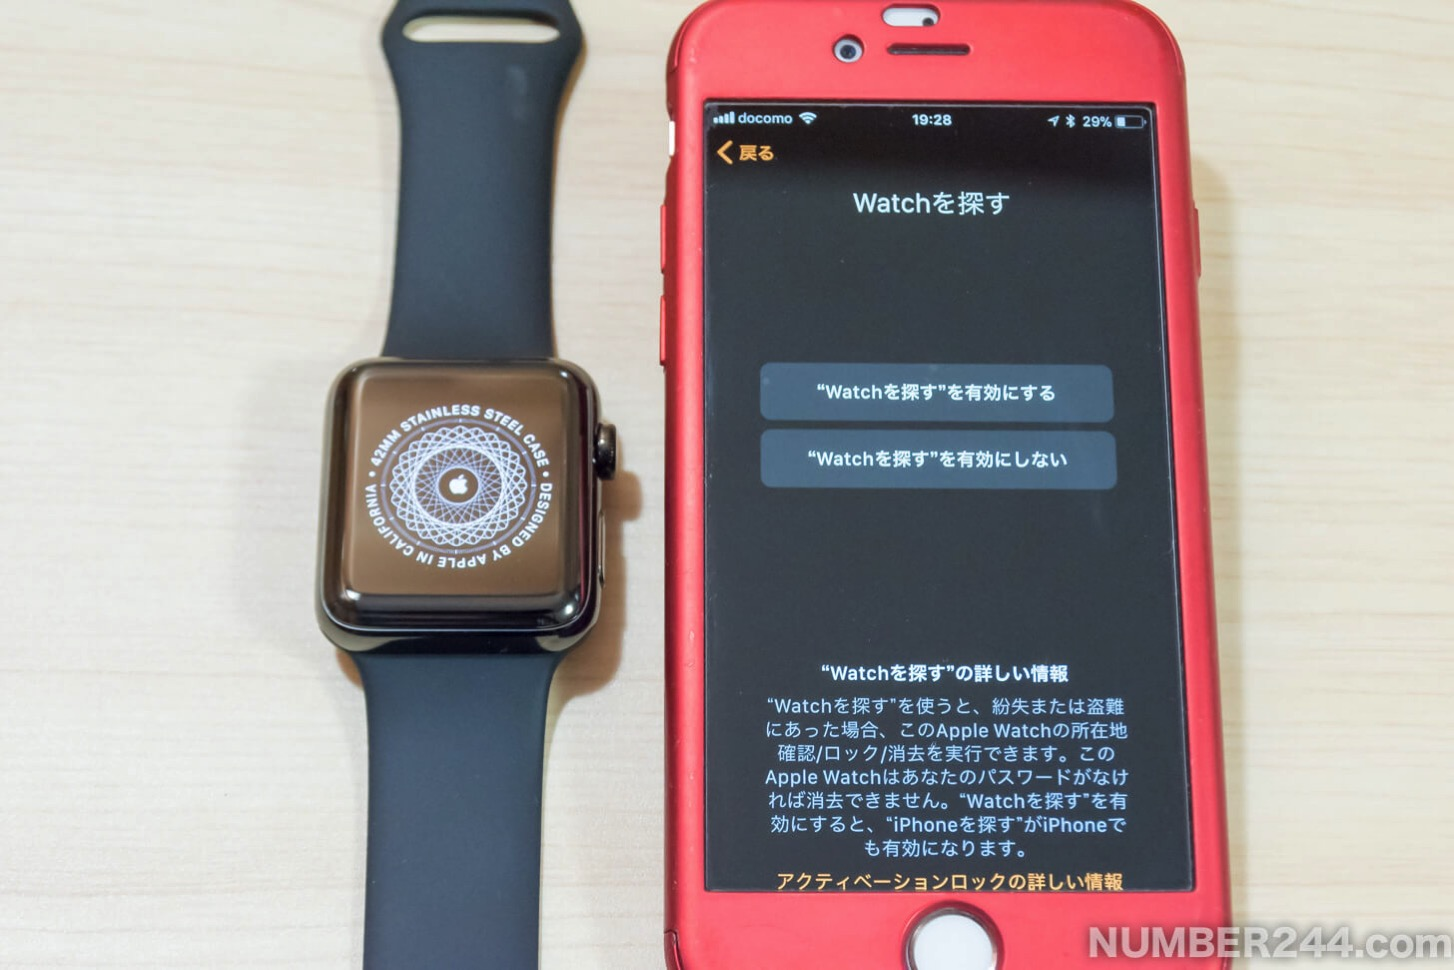 Initial setting of Apple Watch 8